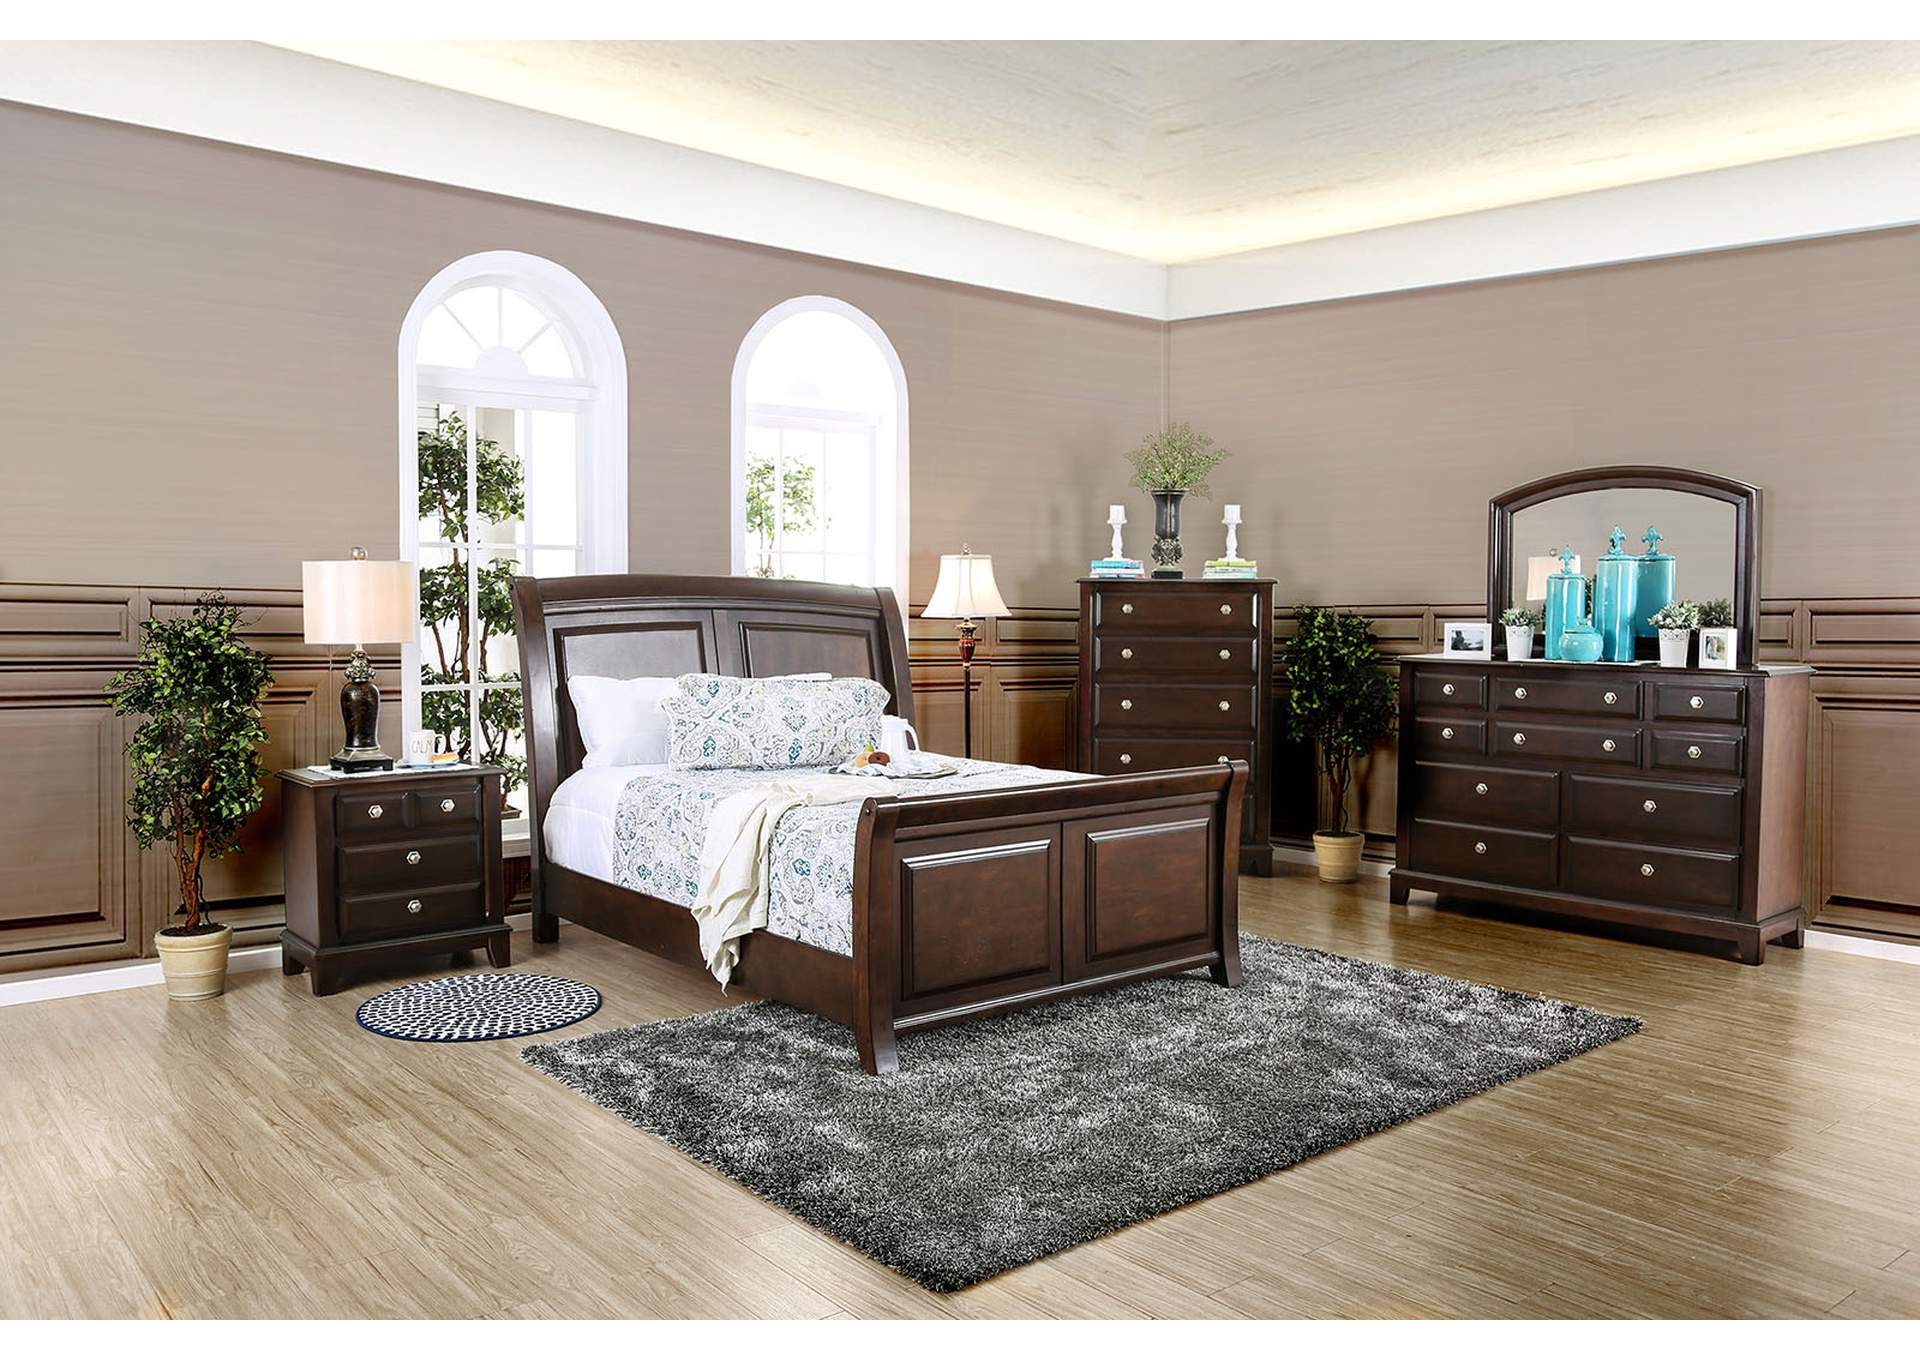 Litchville Brown Cherry California King Sleigh Bed,Furniture of America